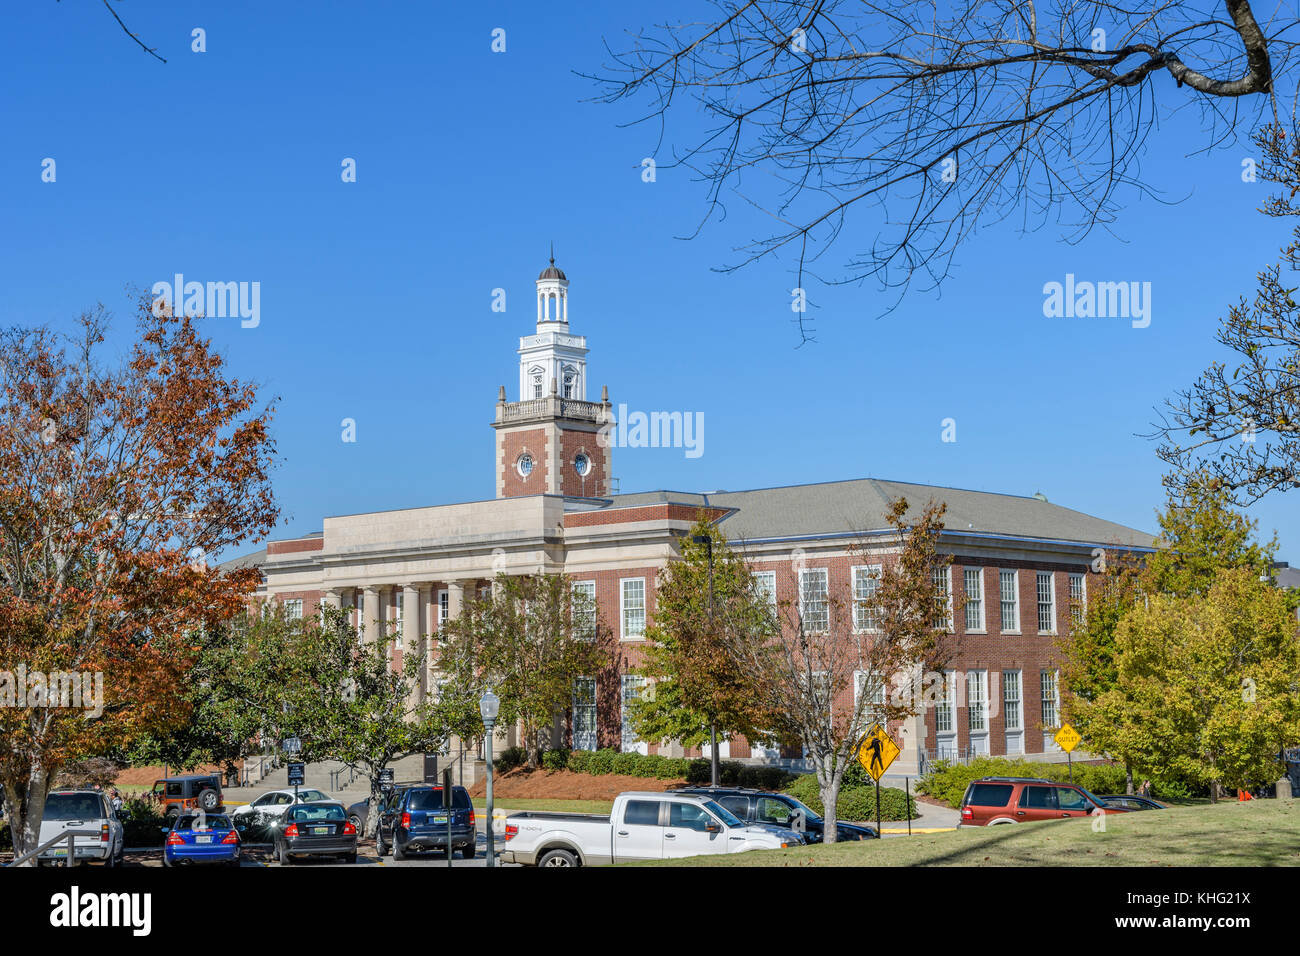 Ross Chemical Laboratory building on the campus of Auburn University, an American university / college in Auburn - Stock Image